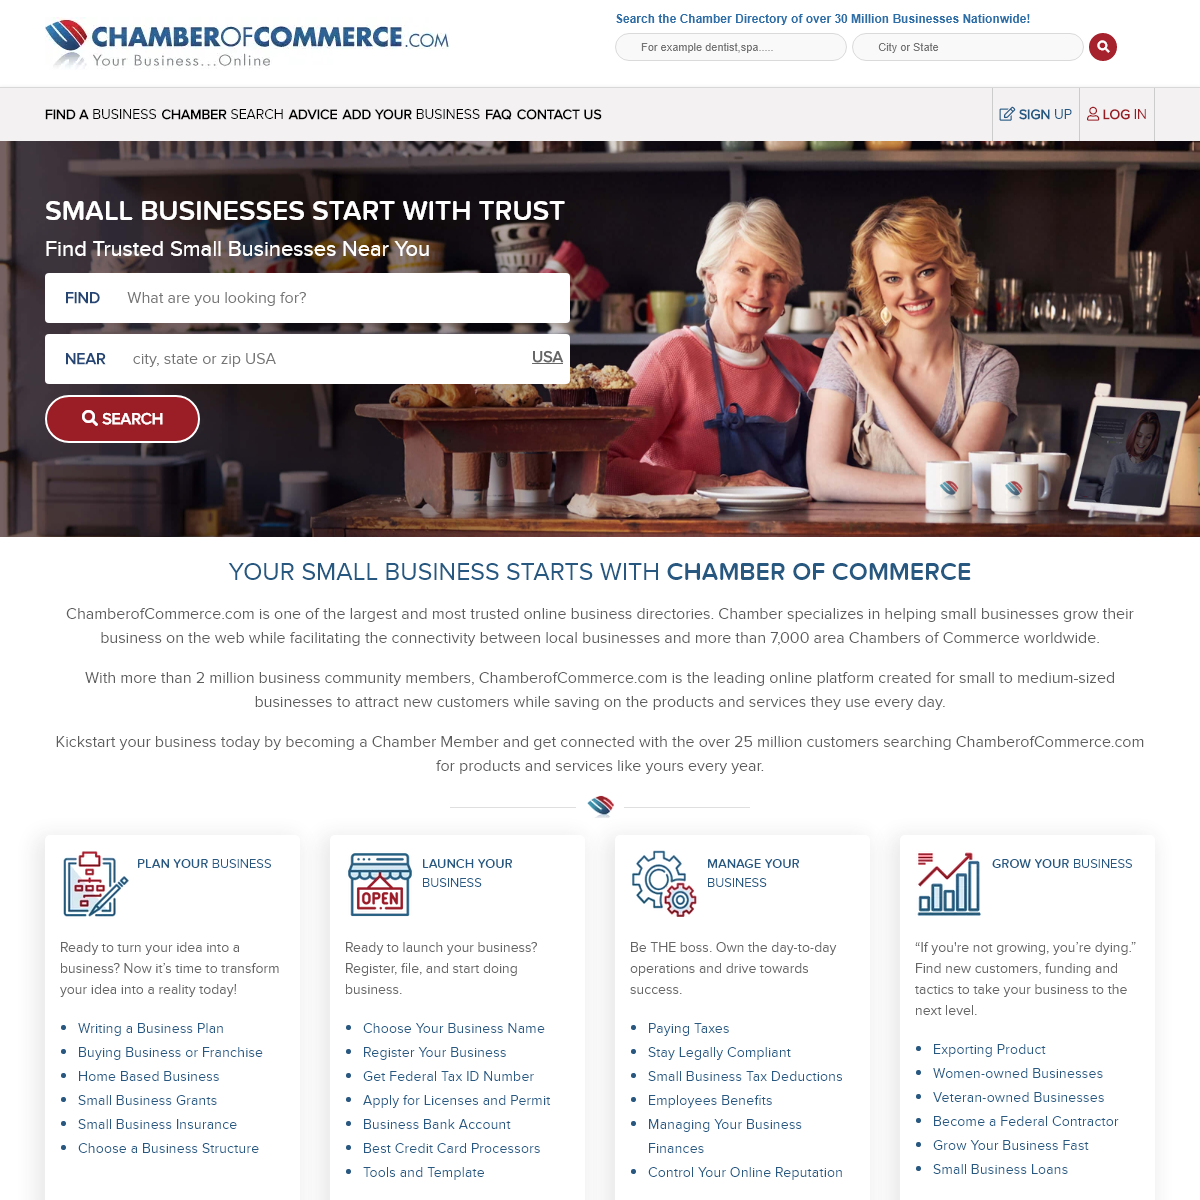 Chamber of Commerce - The Most Trusted Online Business Community